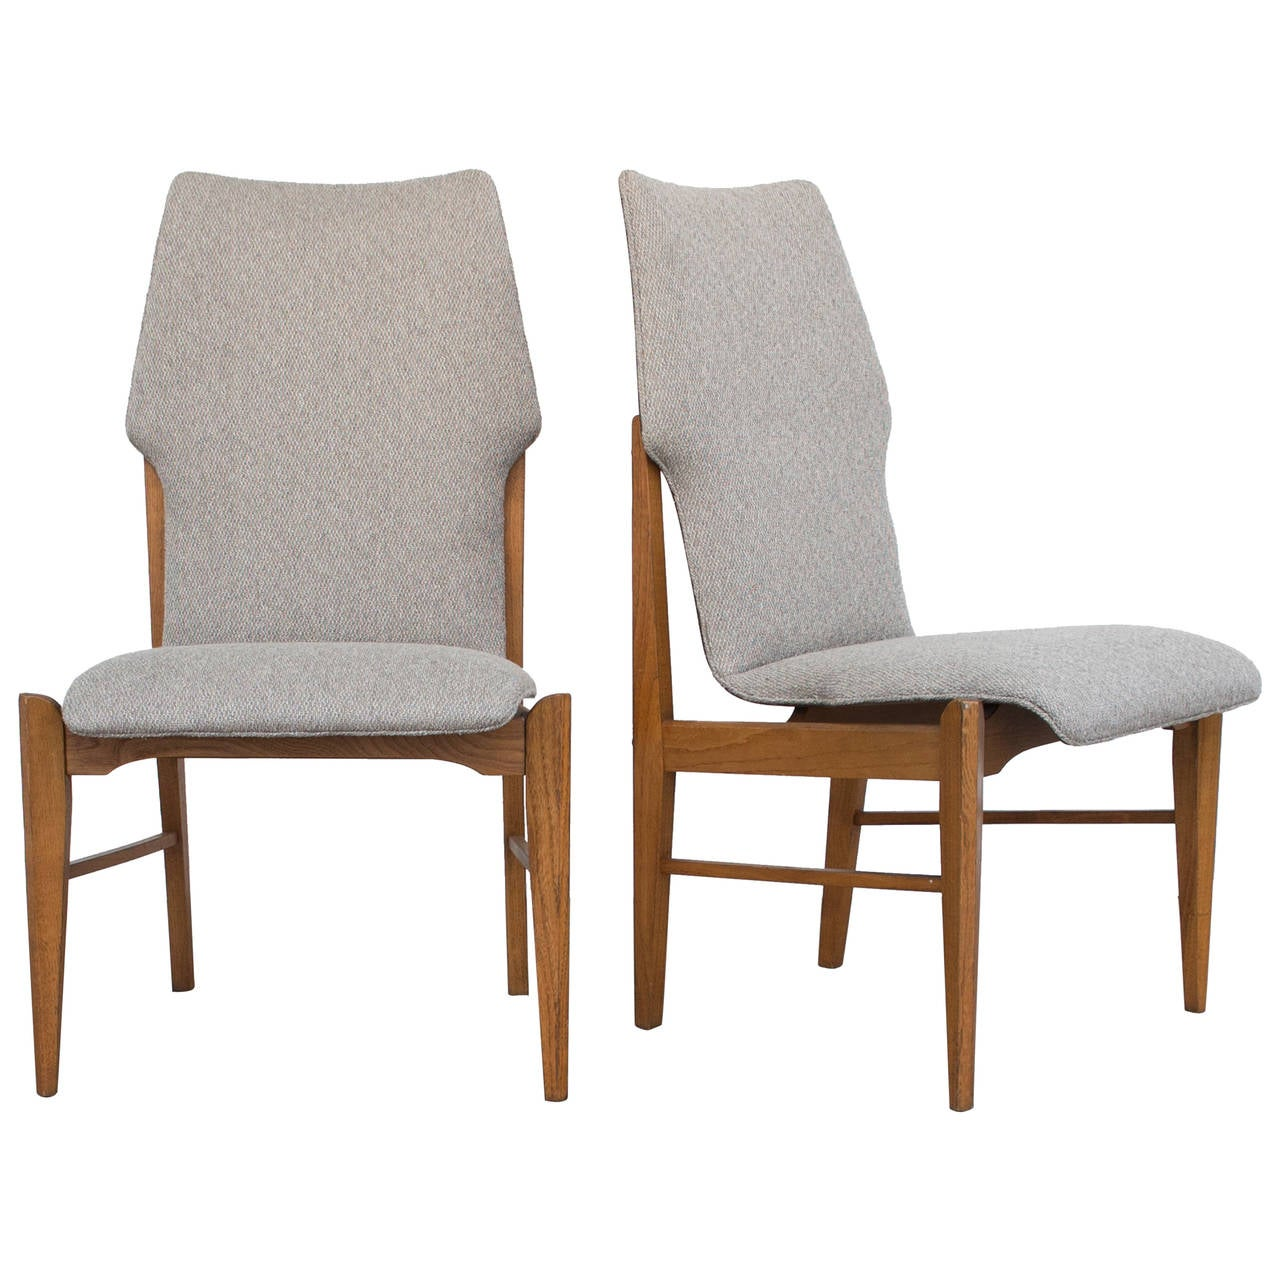 four kodawood danish modern dining chairs at 1stdibs. Black Bedroom Furniture Sets. Home Design Ideas